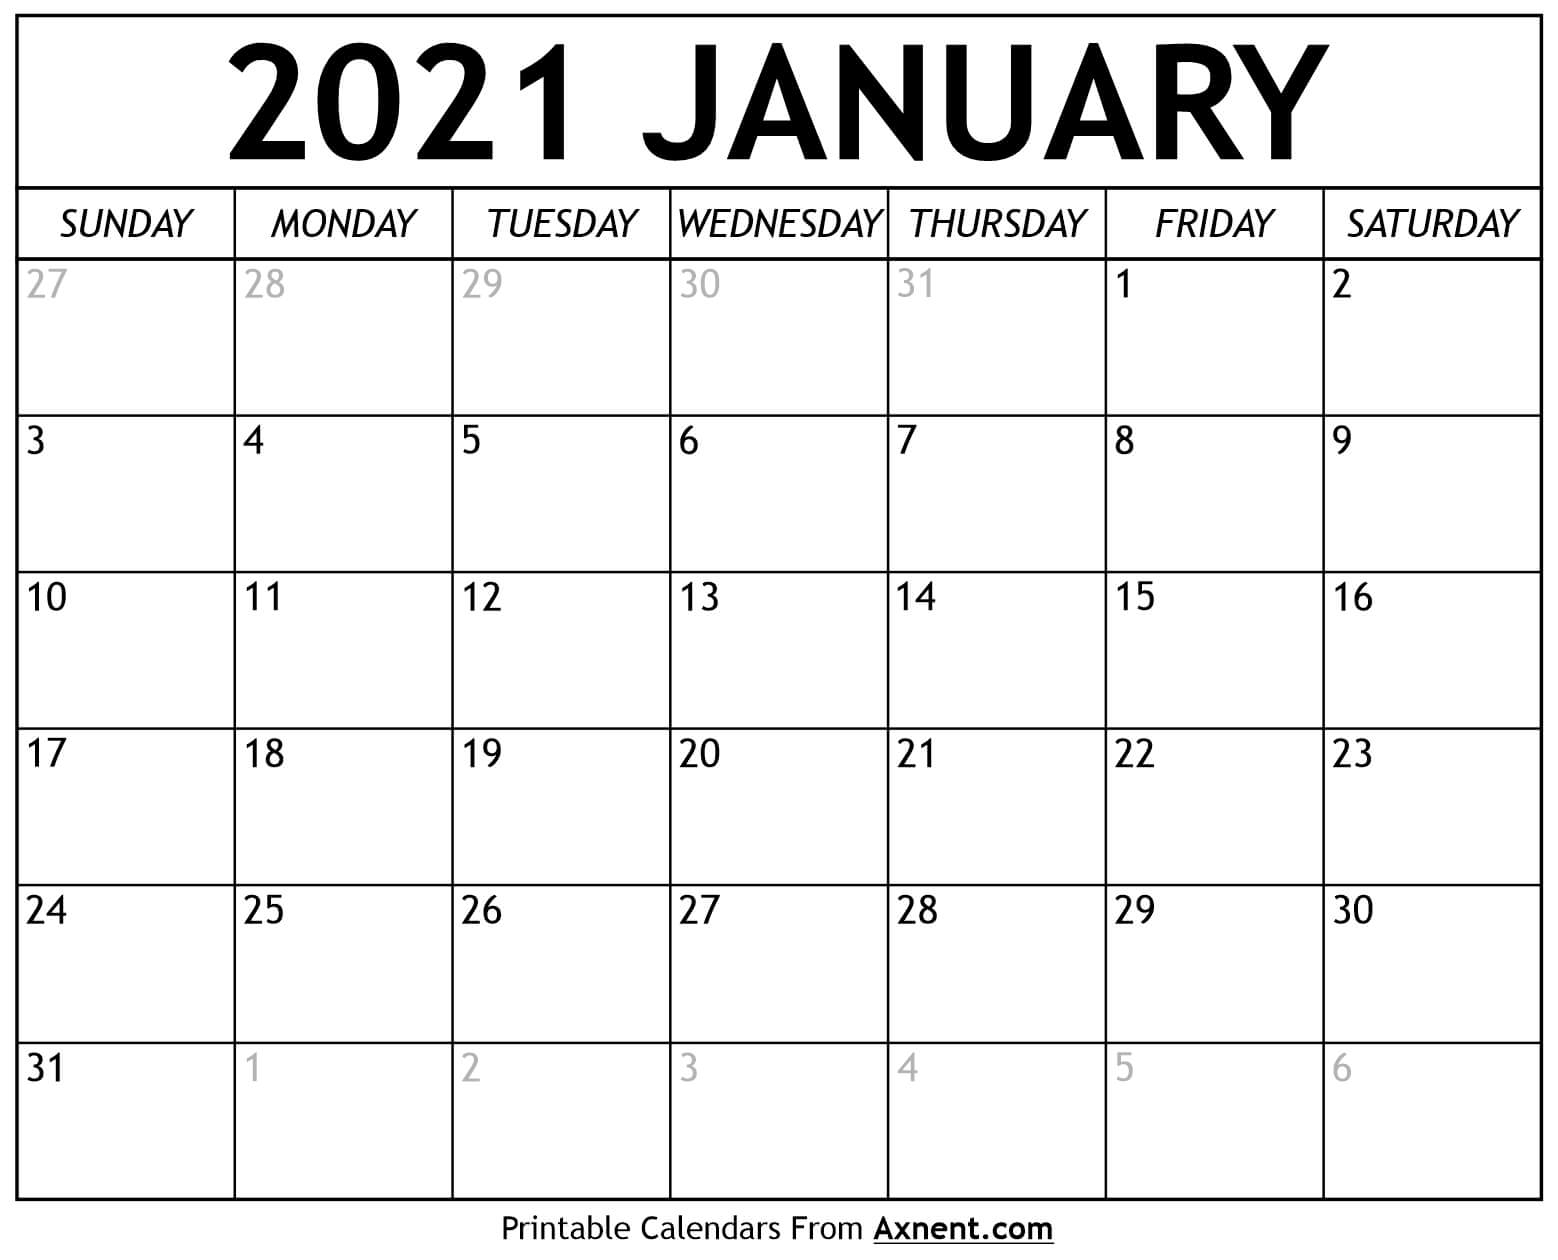 Printable January 2021 Calendar Template - Time Management in Shift Schedule Jan 2021